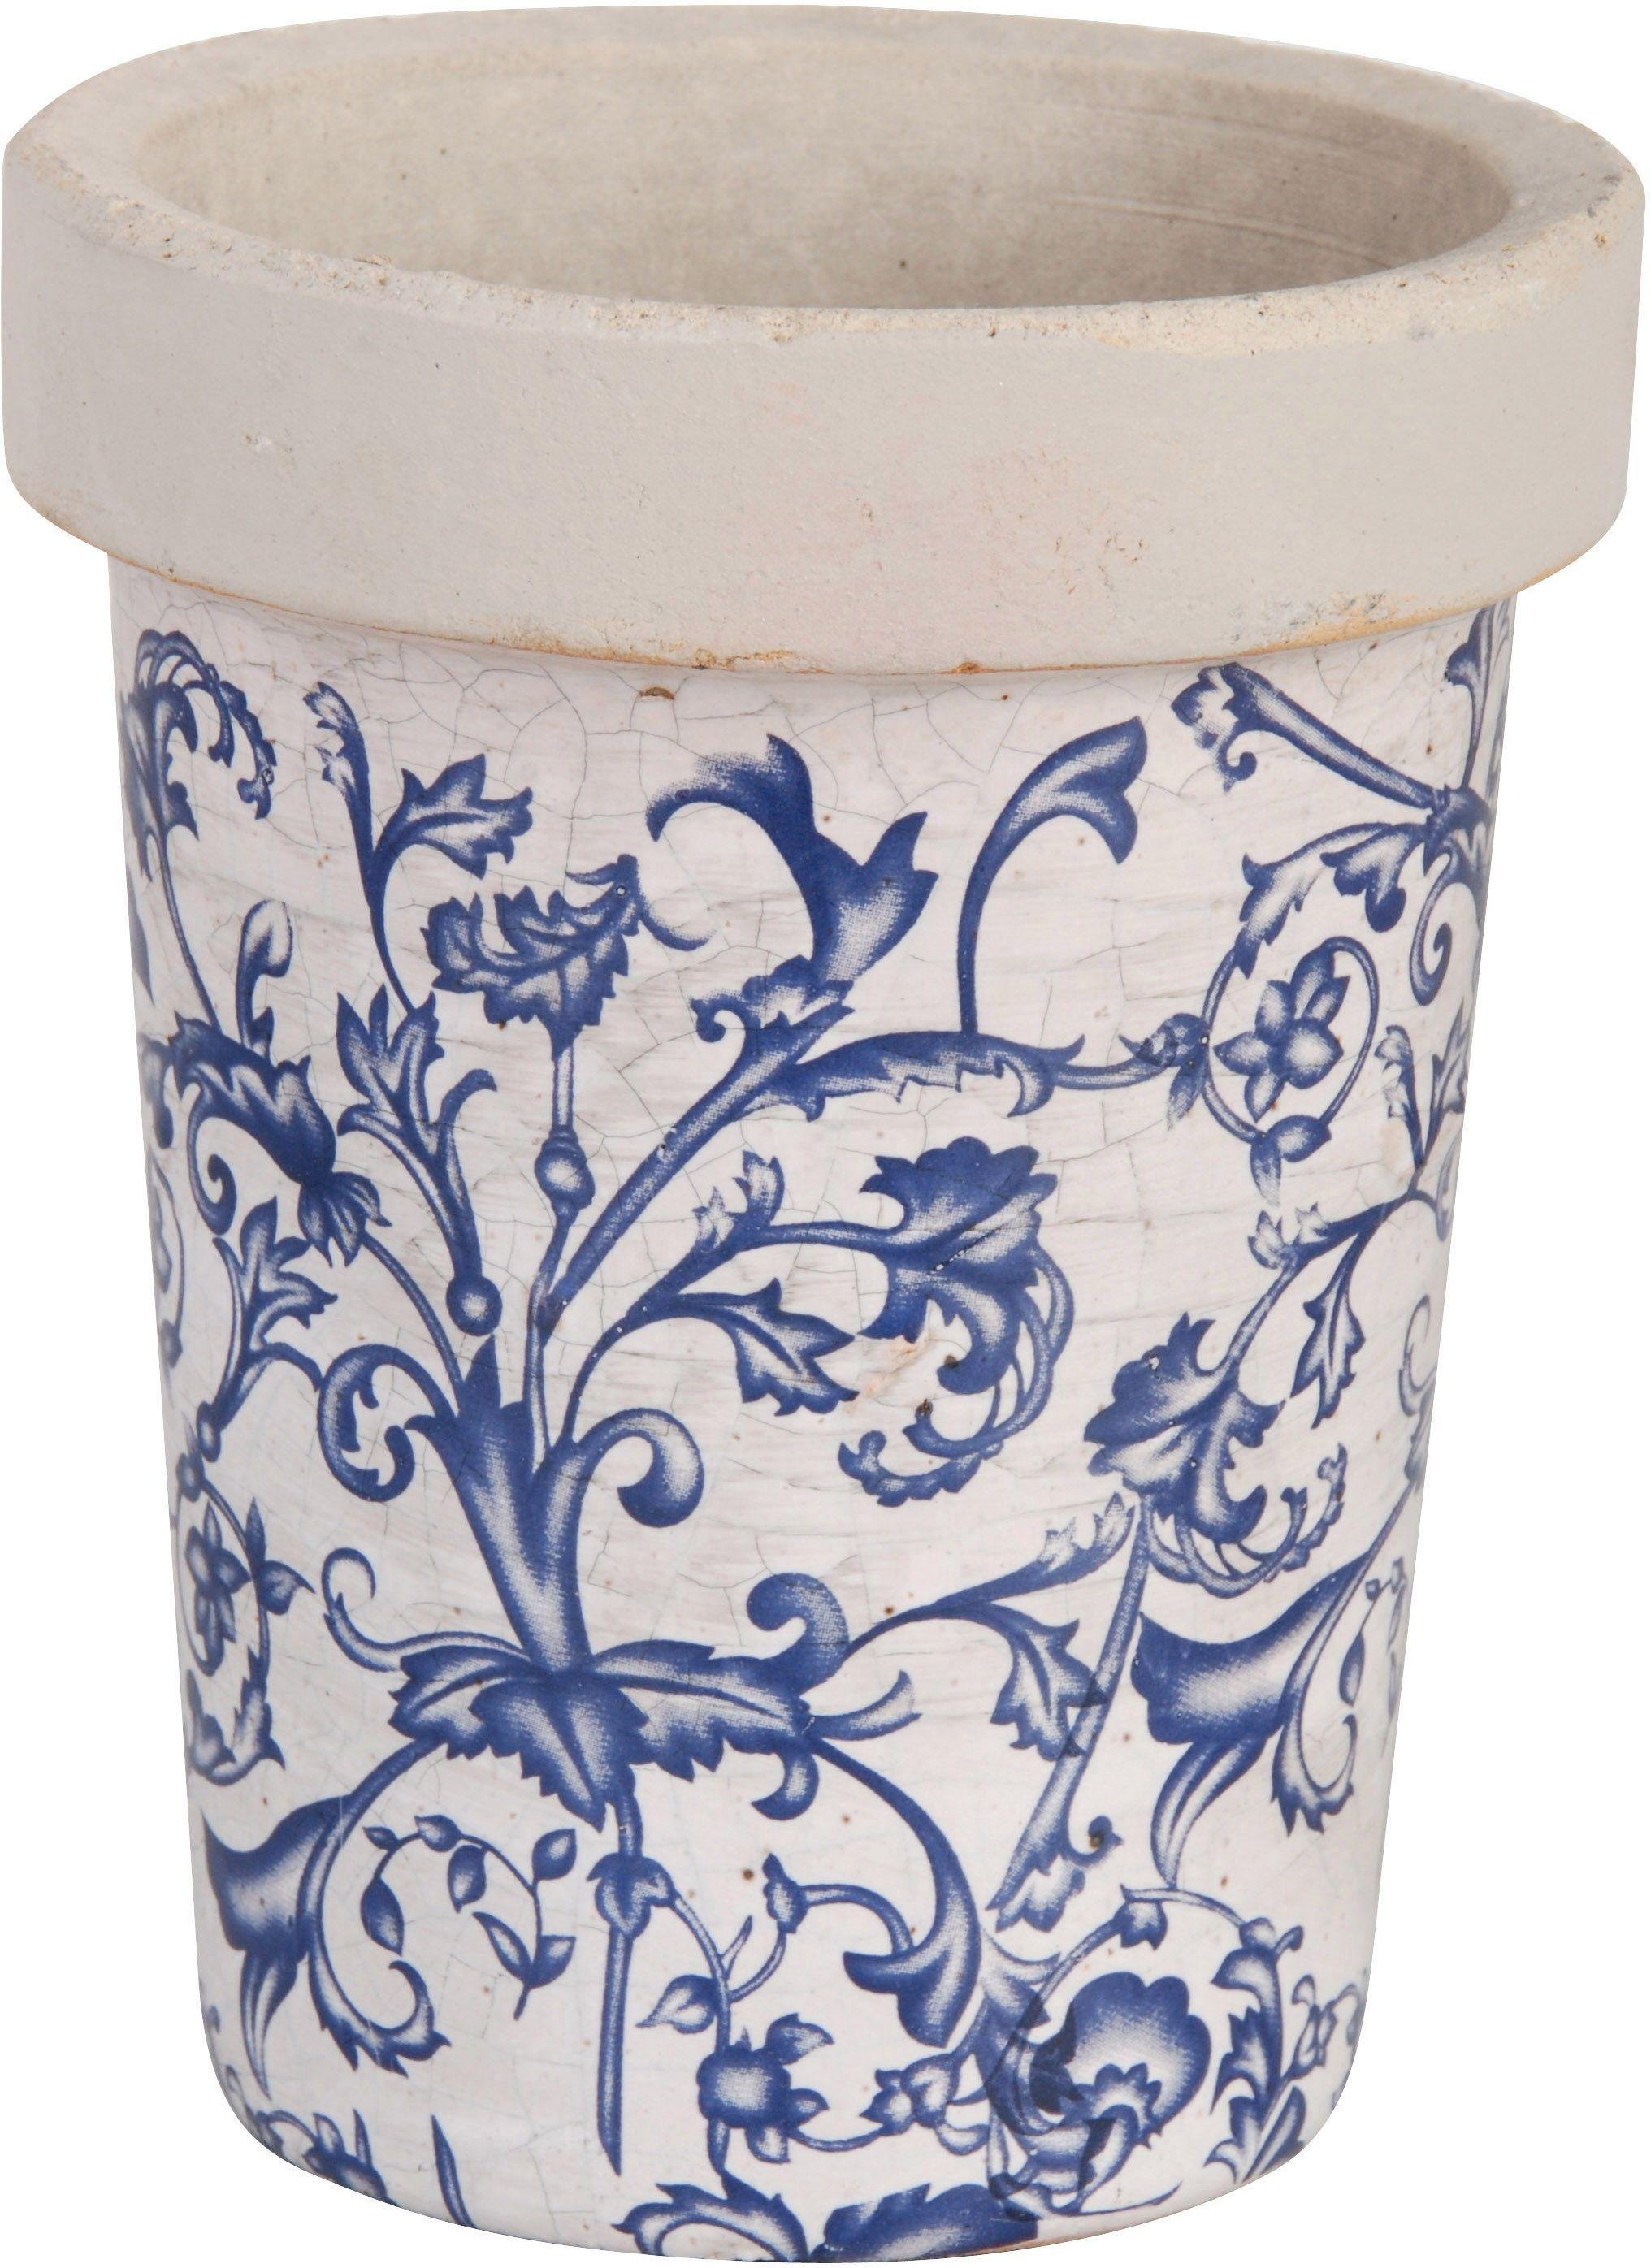 Fallen Fruits - Aged Ceramic Plant Pot lowest price